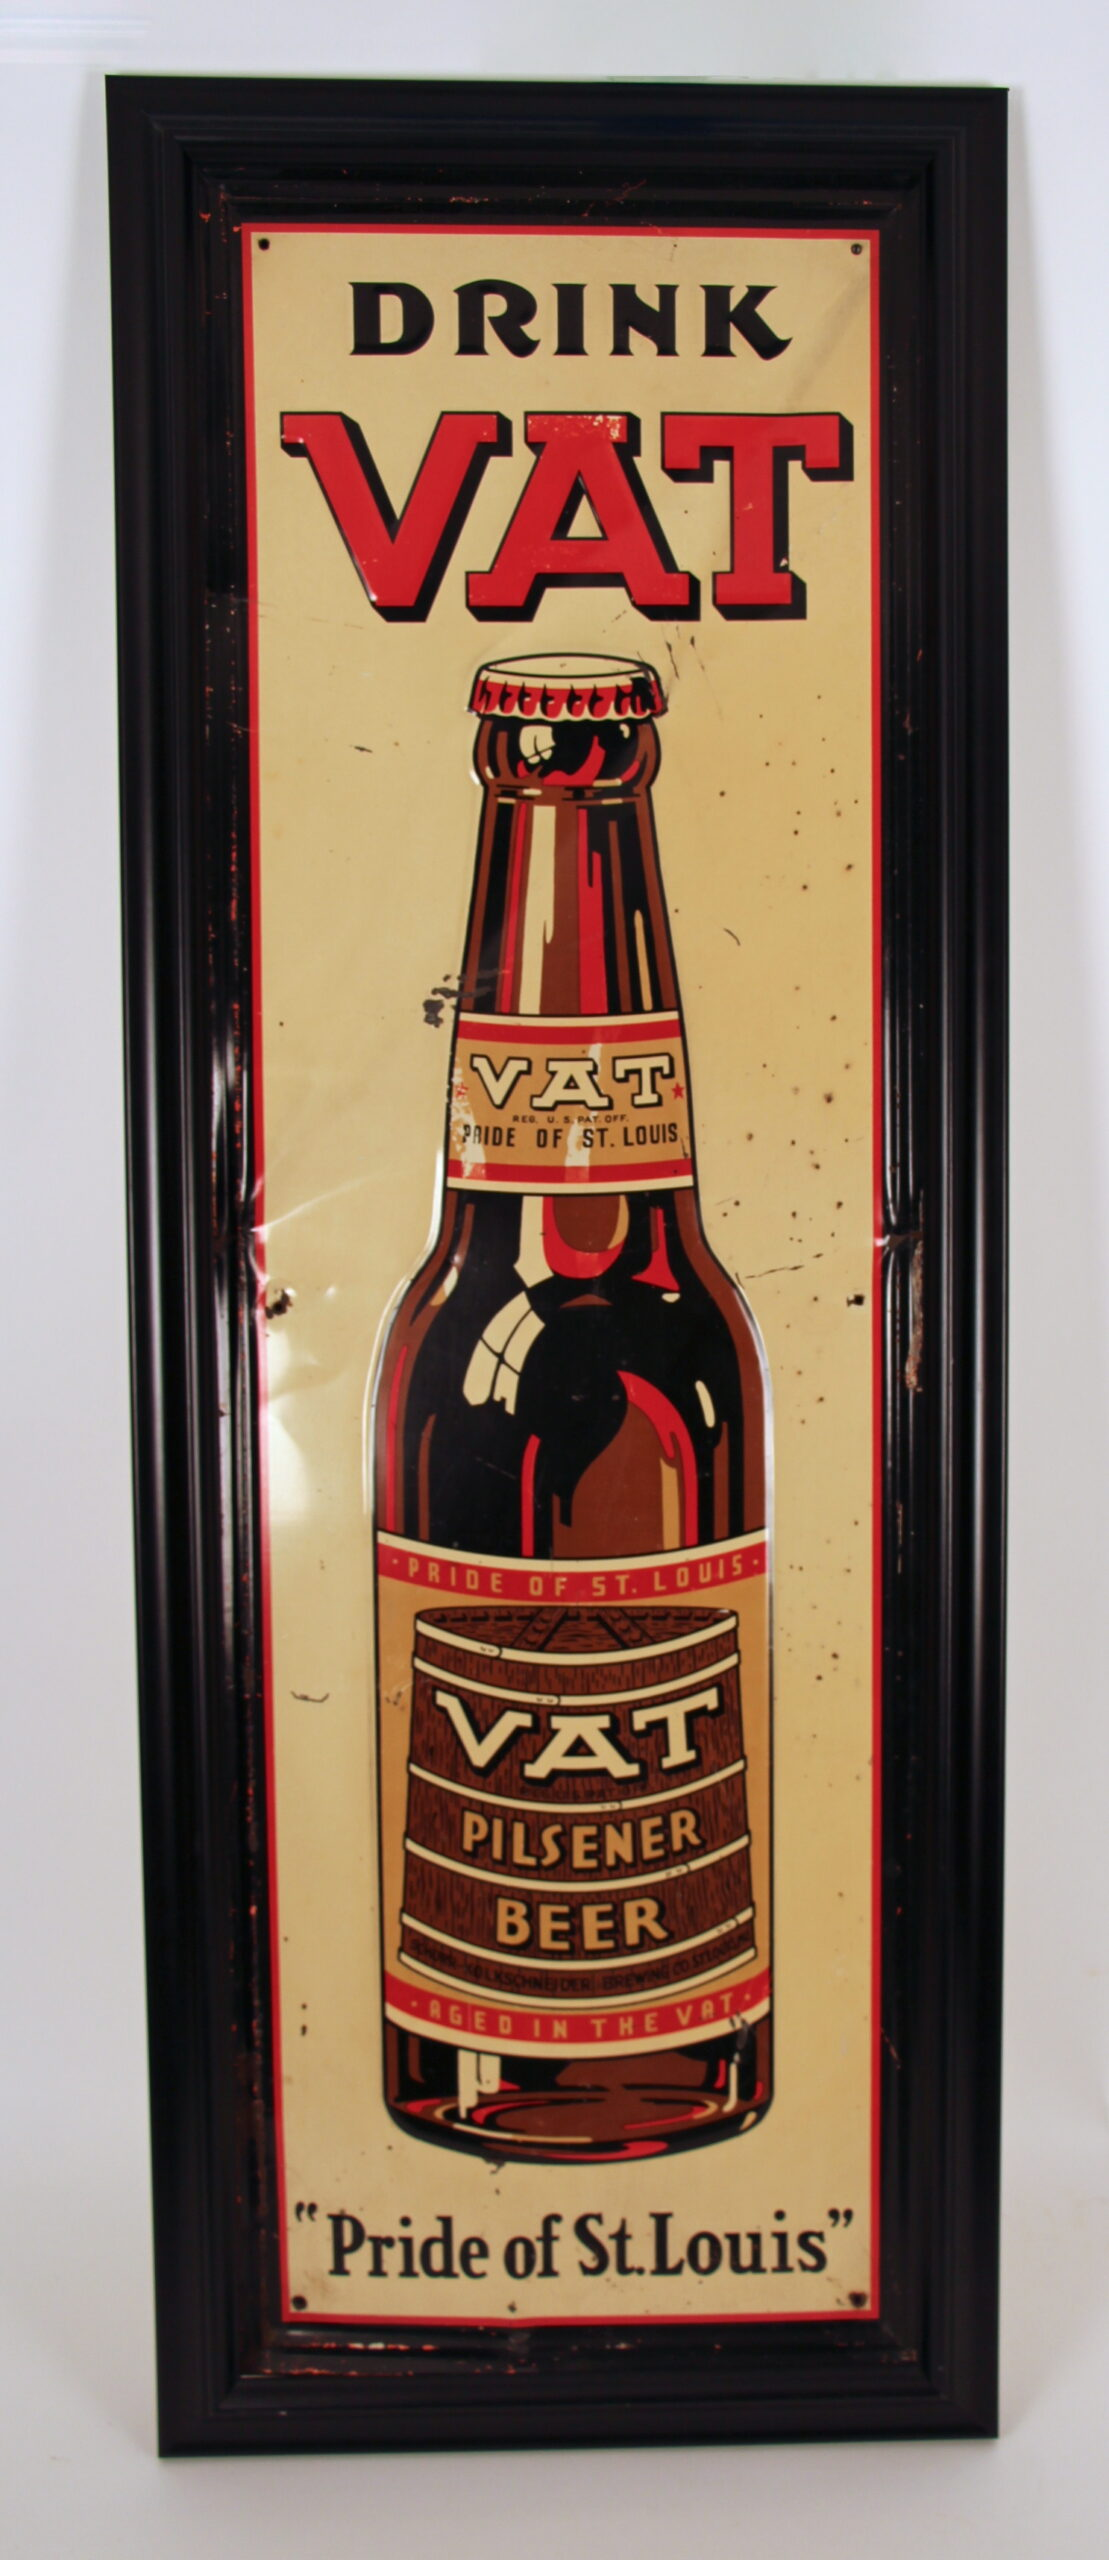 Drink Vat Pilsener Beer Tin Sign, Schorr-Kolkschneider Brewing Co, St. Louis, MO. Circa 1935